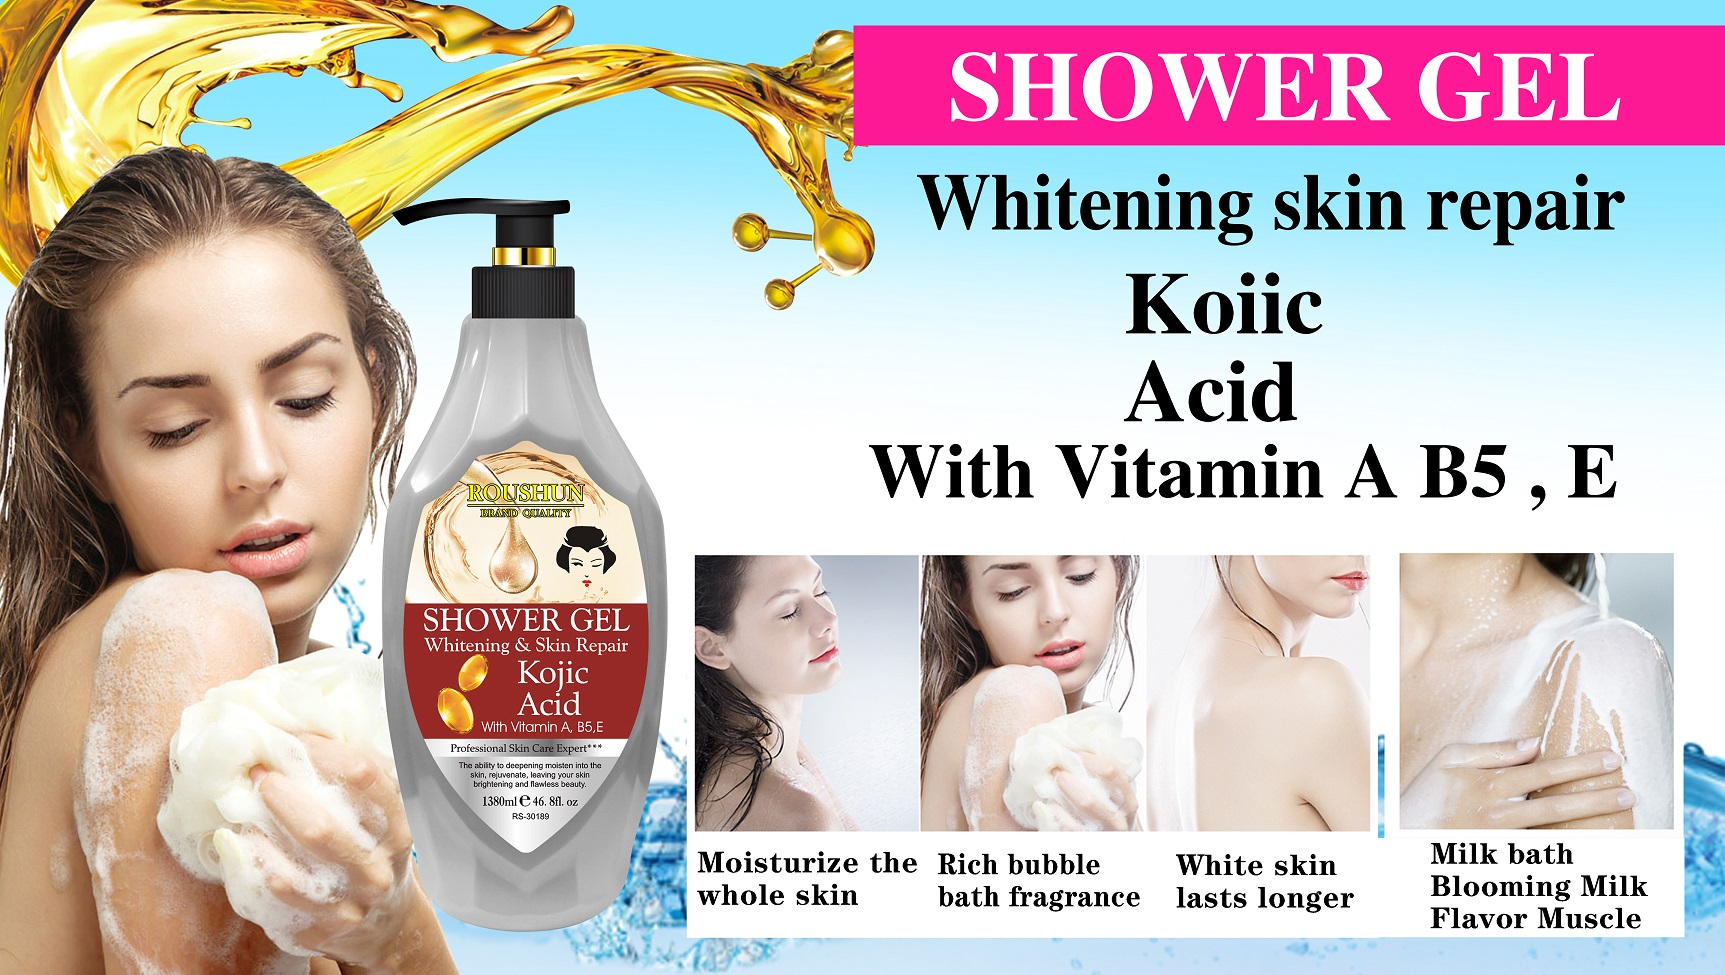 Softening And Whitening Skin Moisturizing Shower Gel